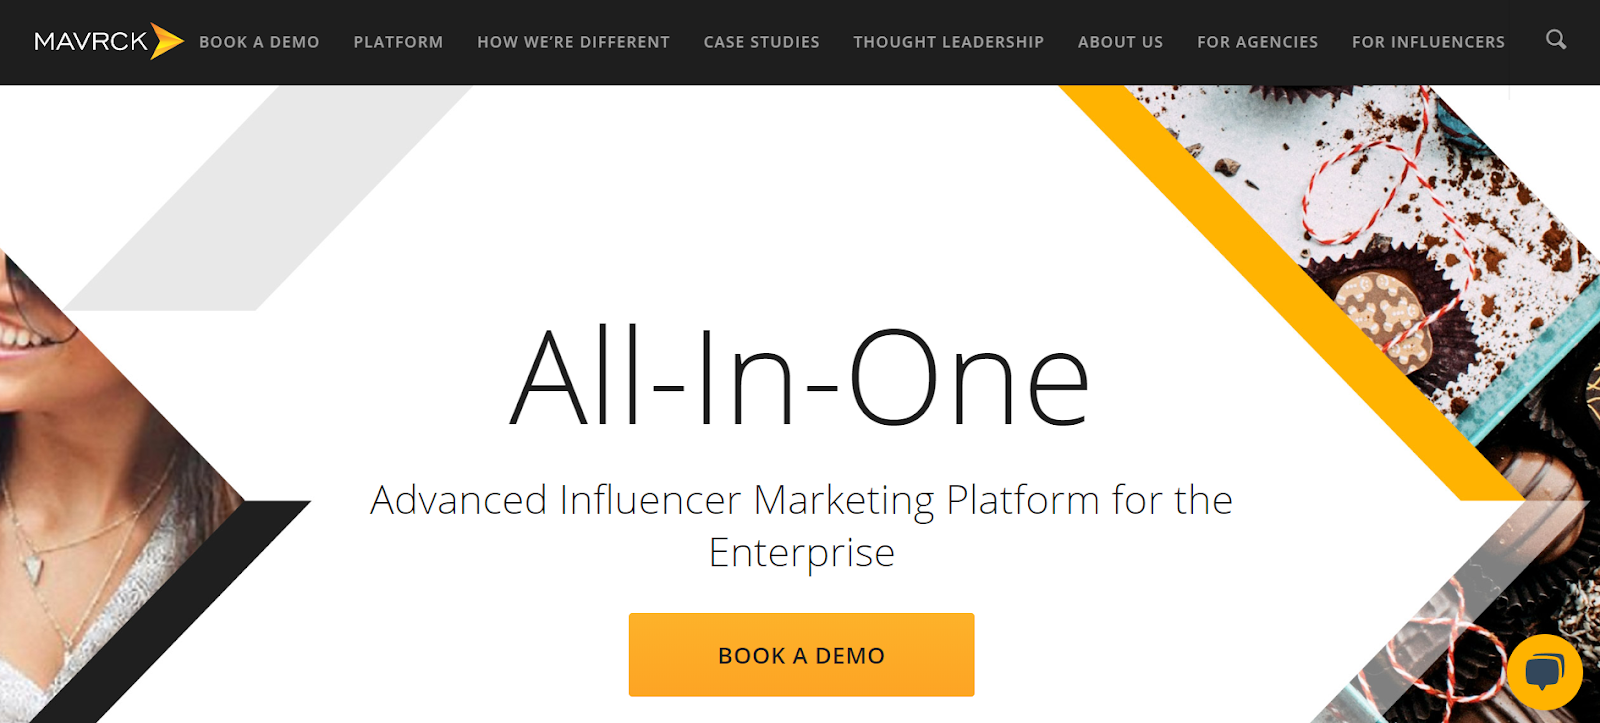 Mavrck Influencer Marketing Platform